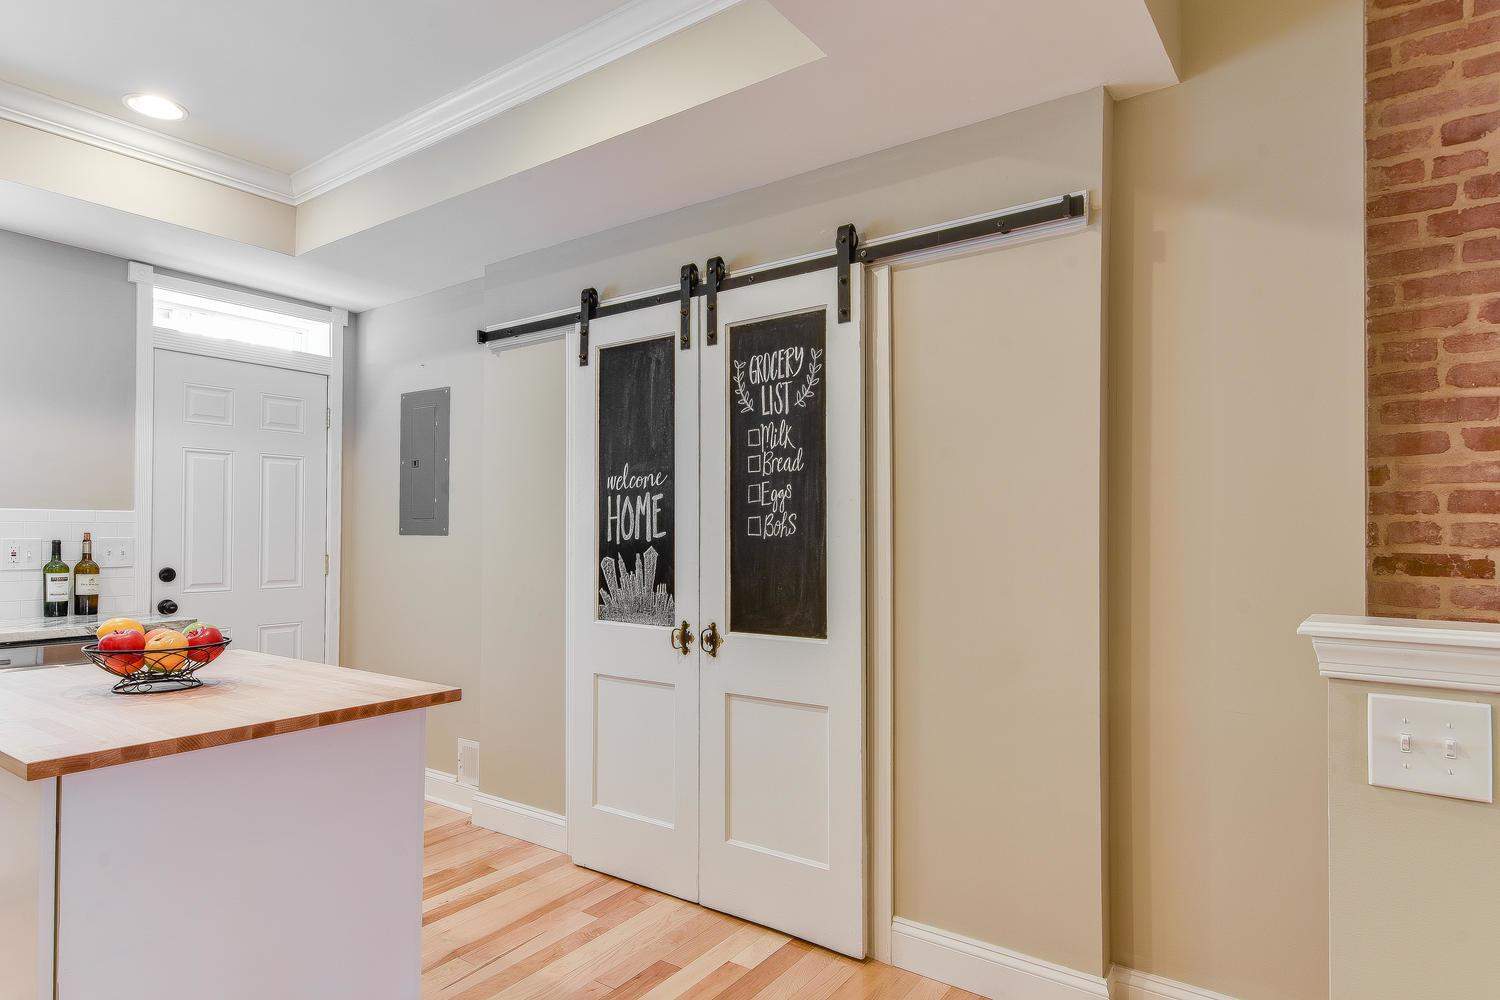 White barn door-style pantry doors in a kitchen